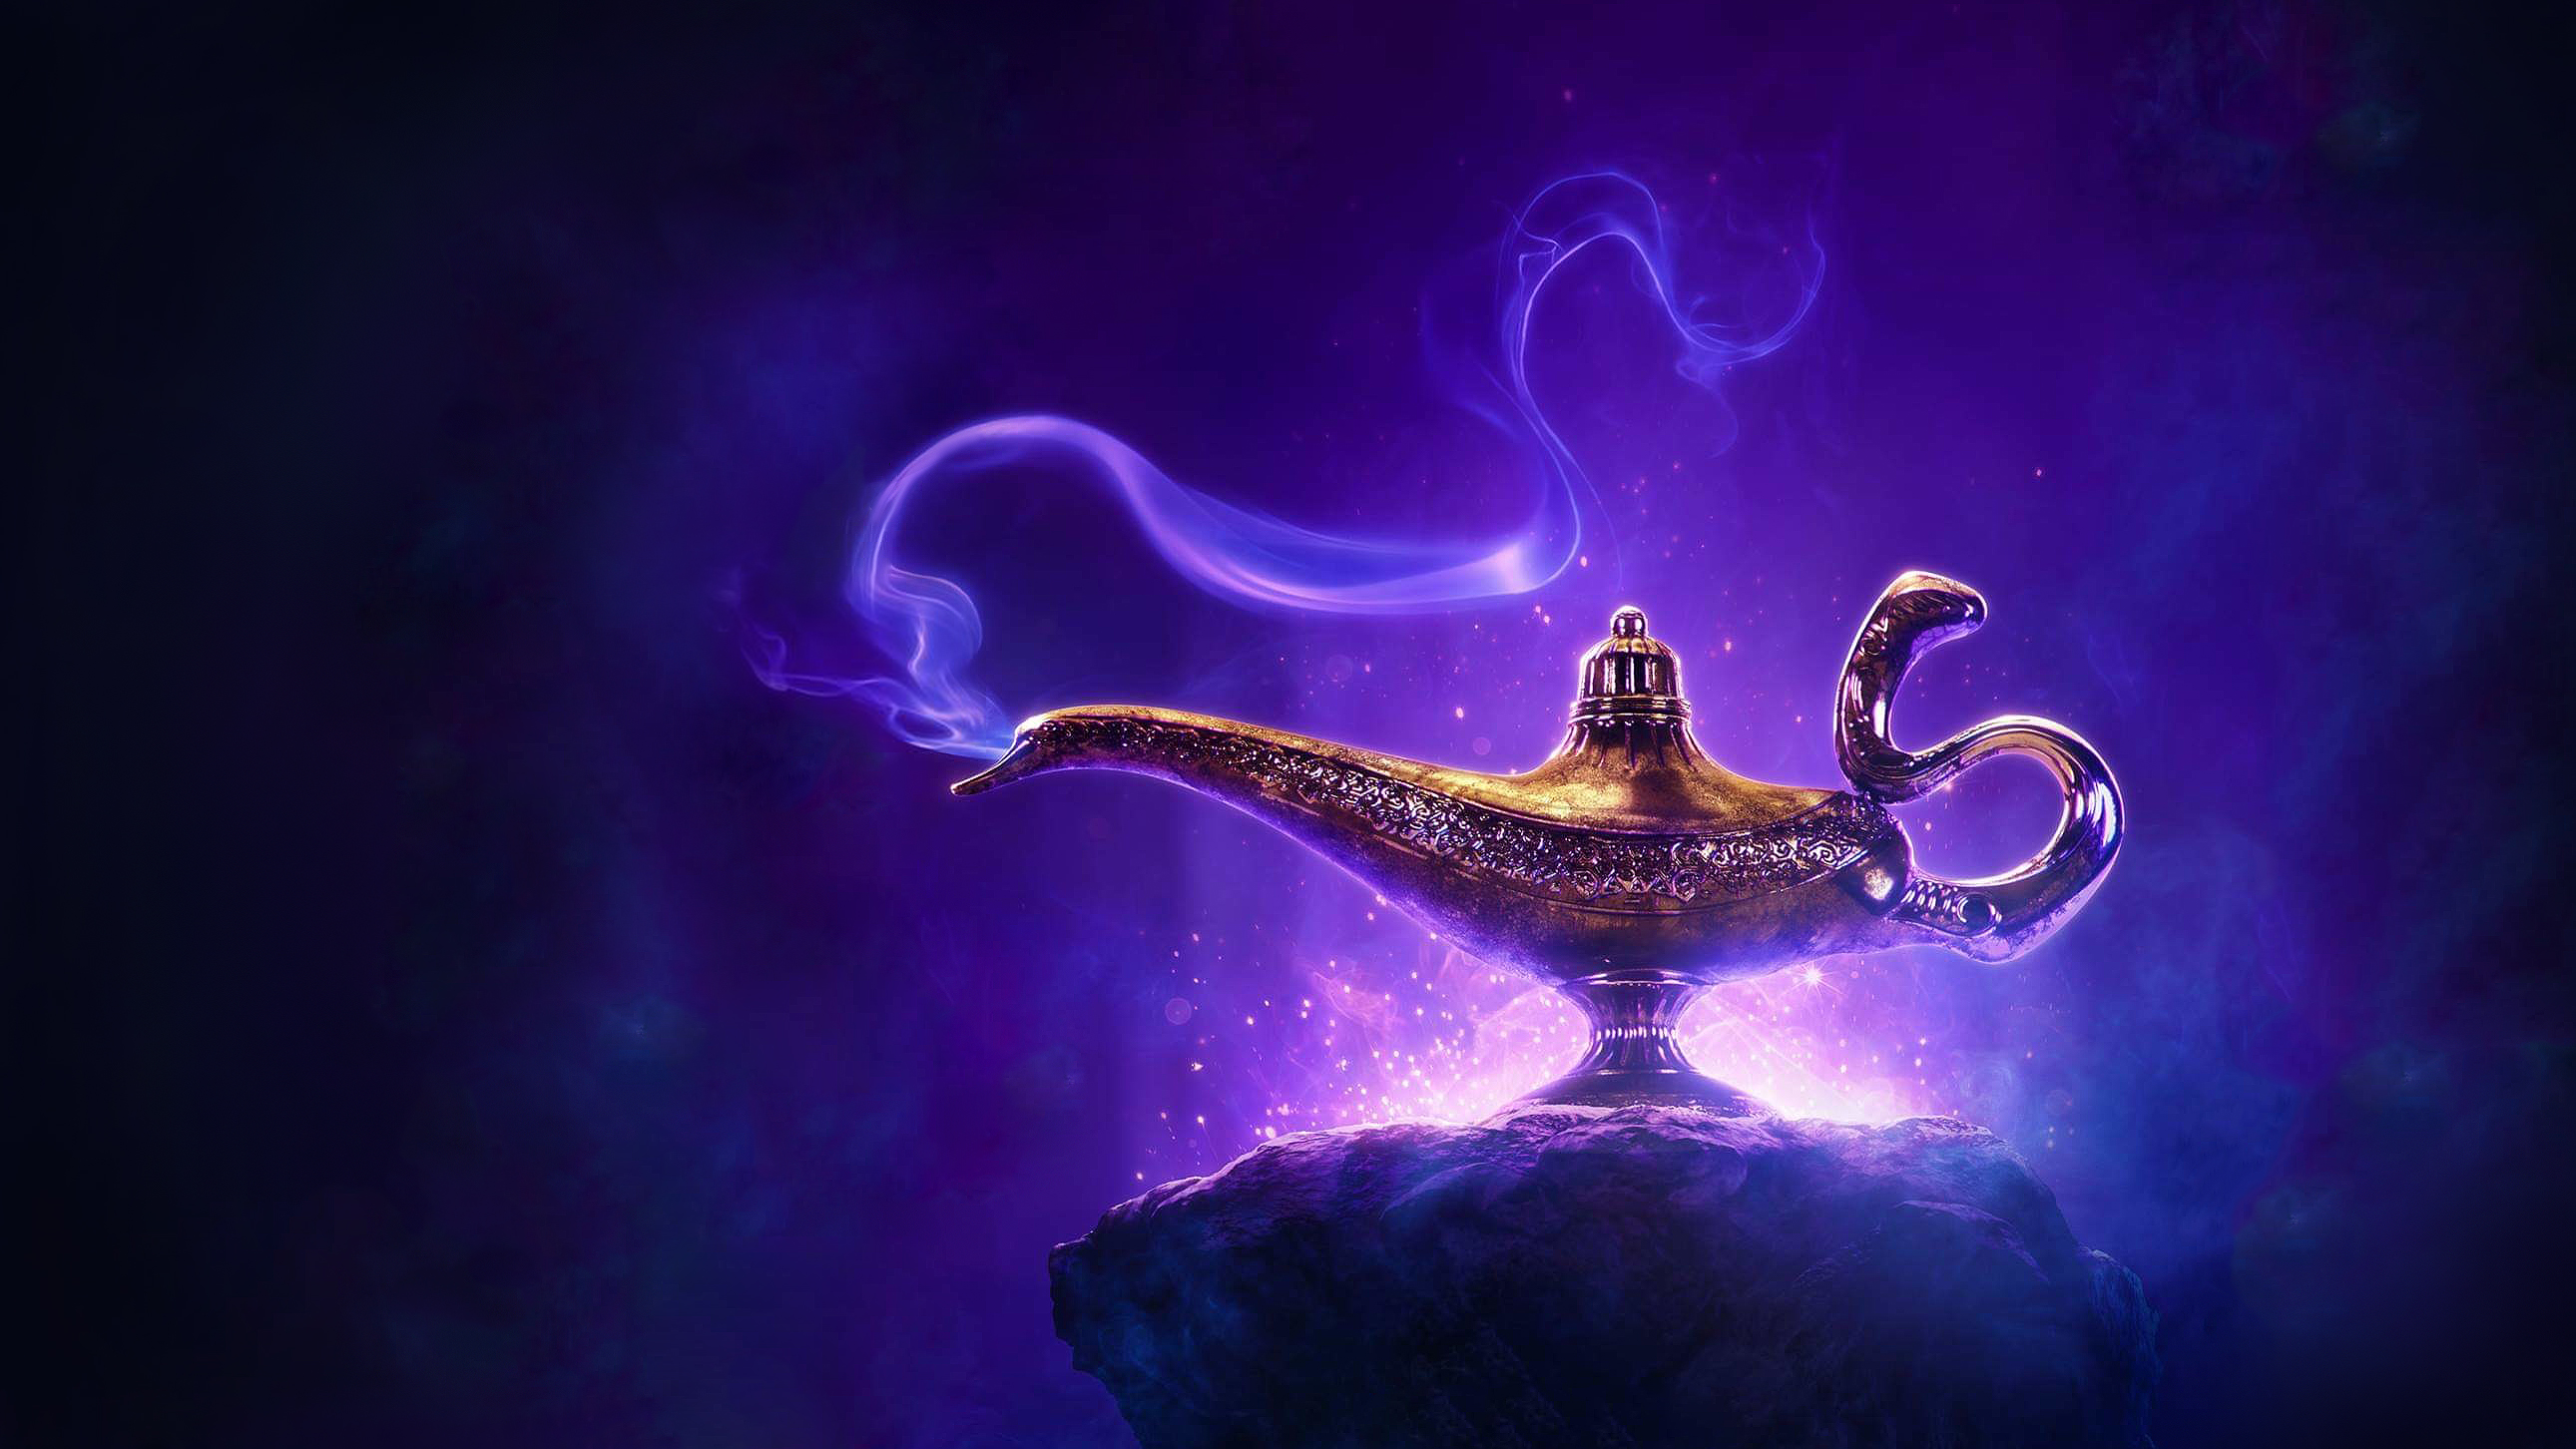 Aladdin 2019 images Aladdin HD wallpaper and background photos 2581x1452